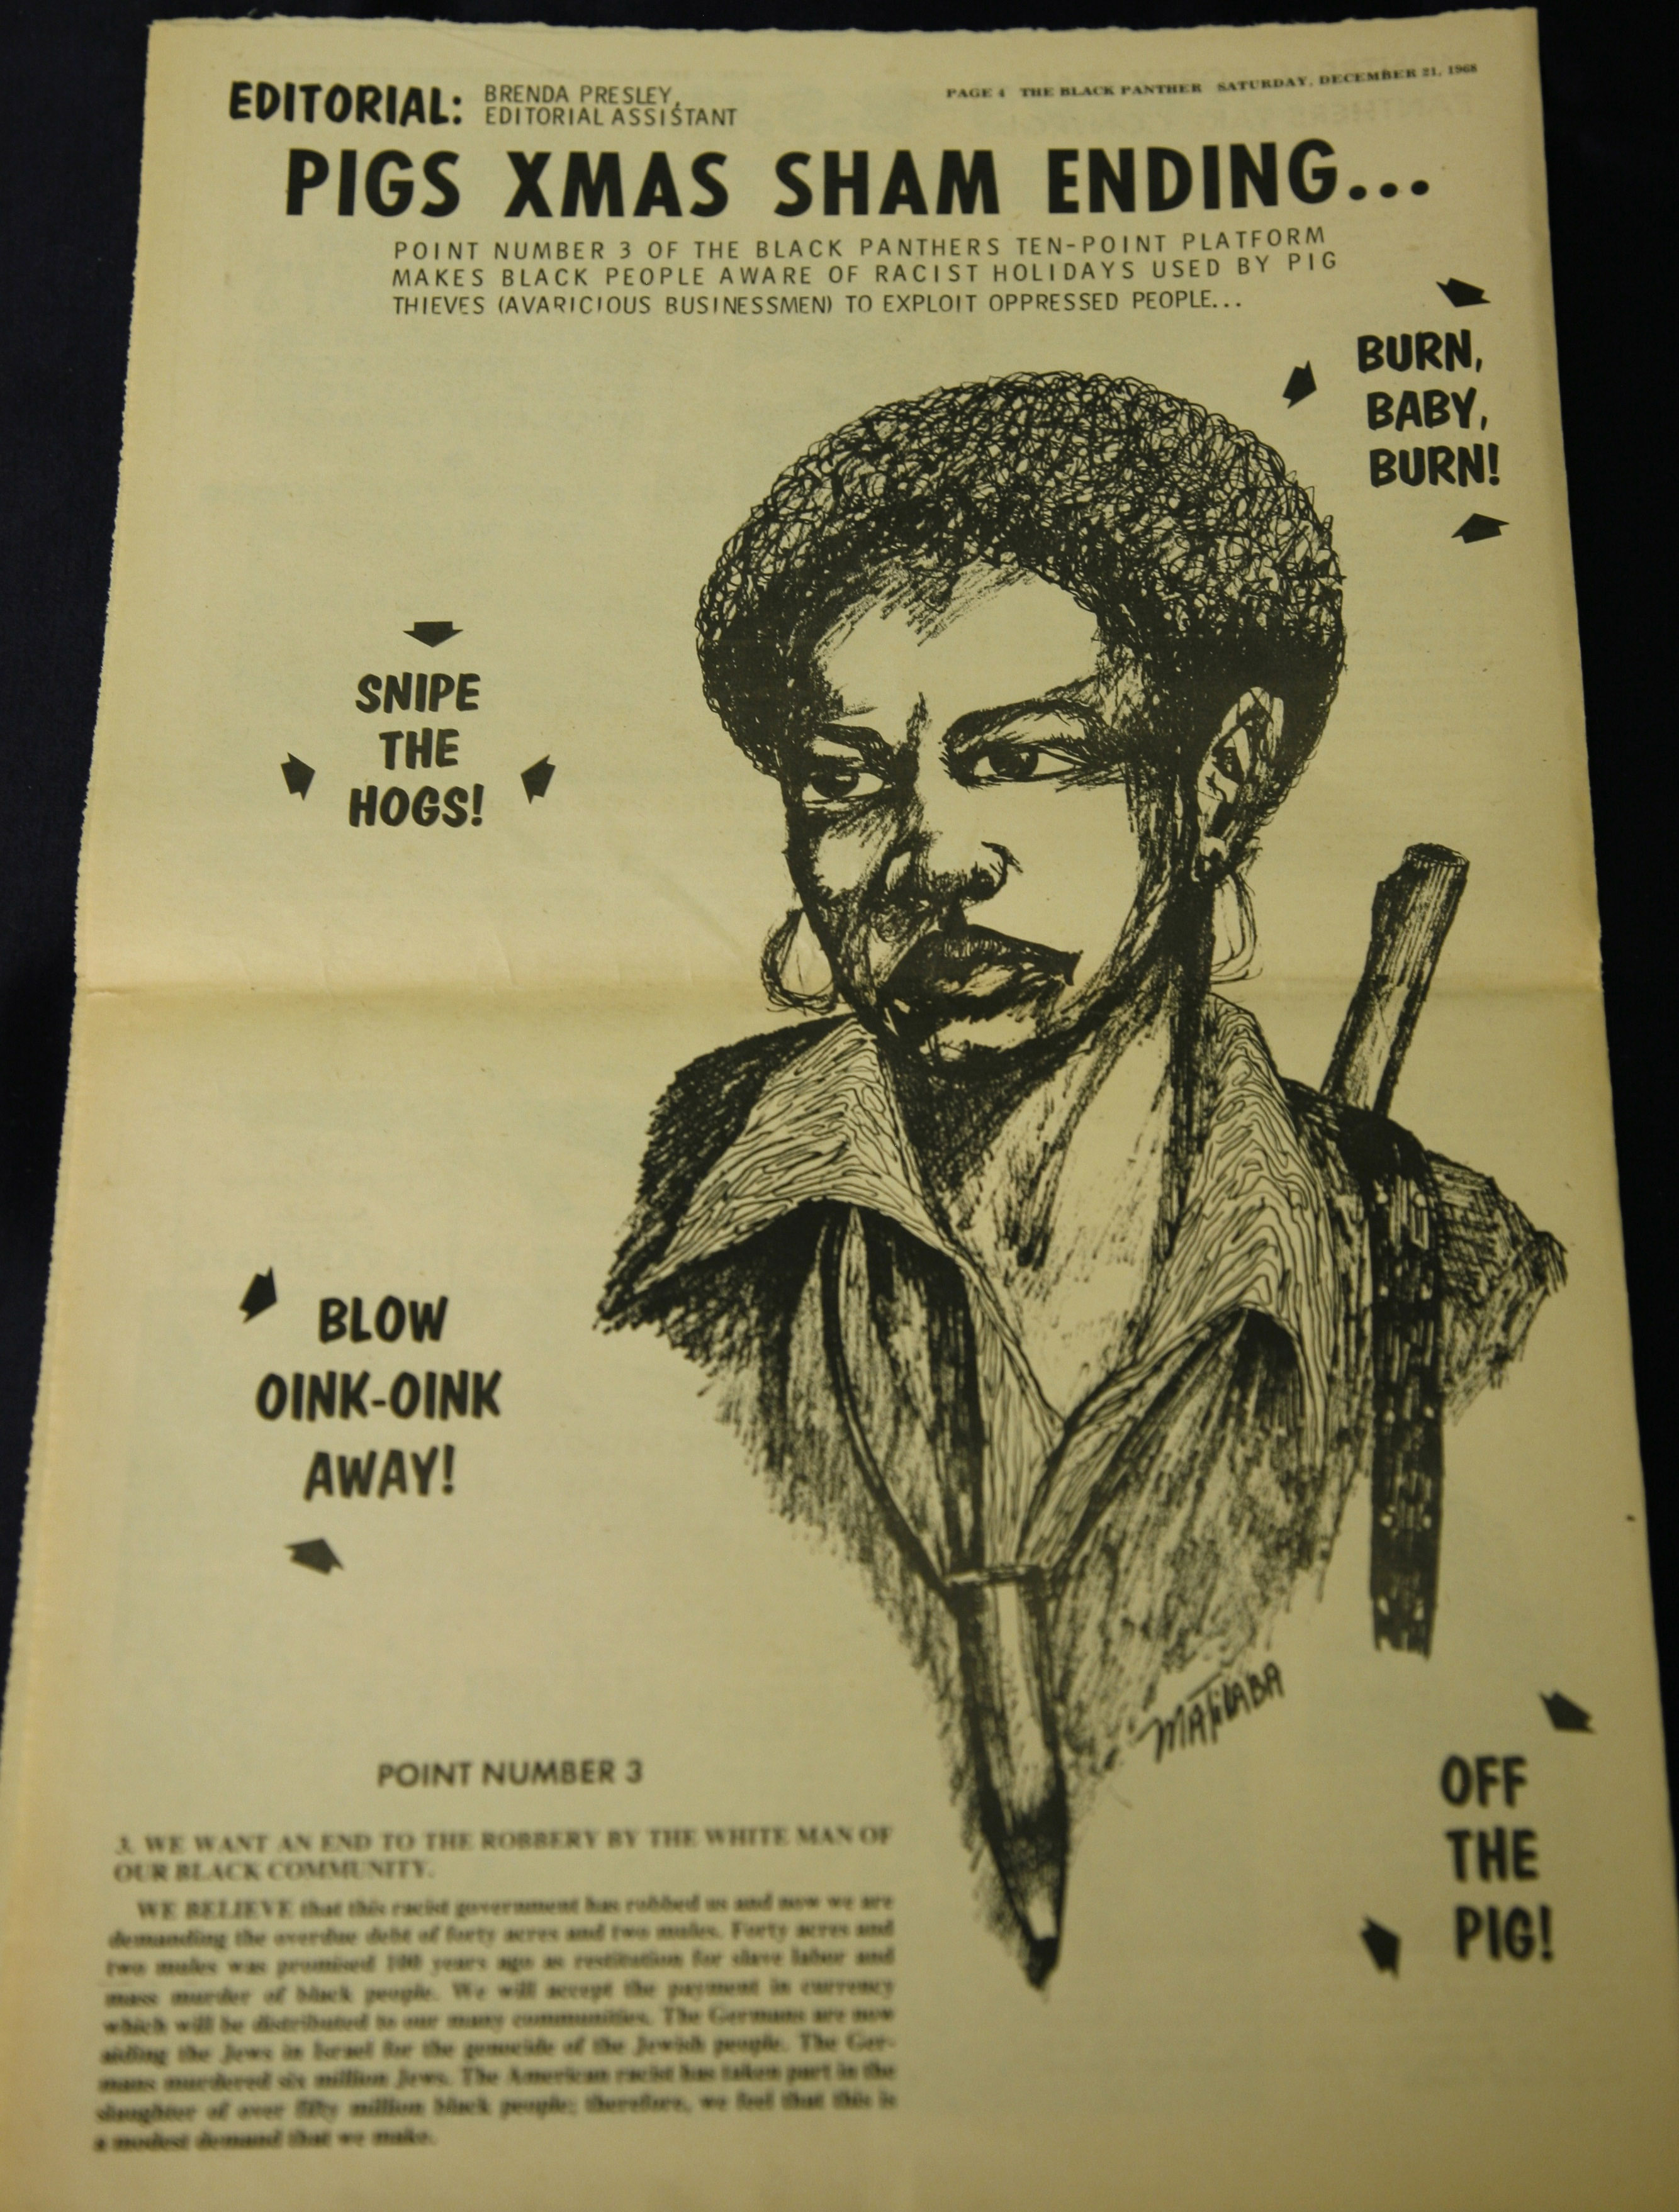 black panther research essay Free essay on the black panther party available totally free at echeatcom, the largest free essay community.